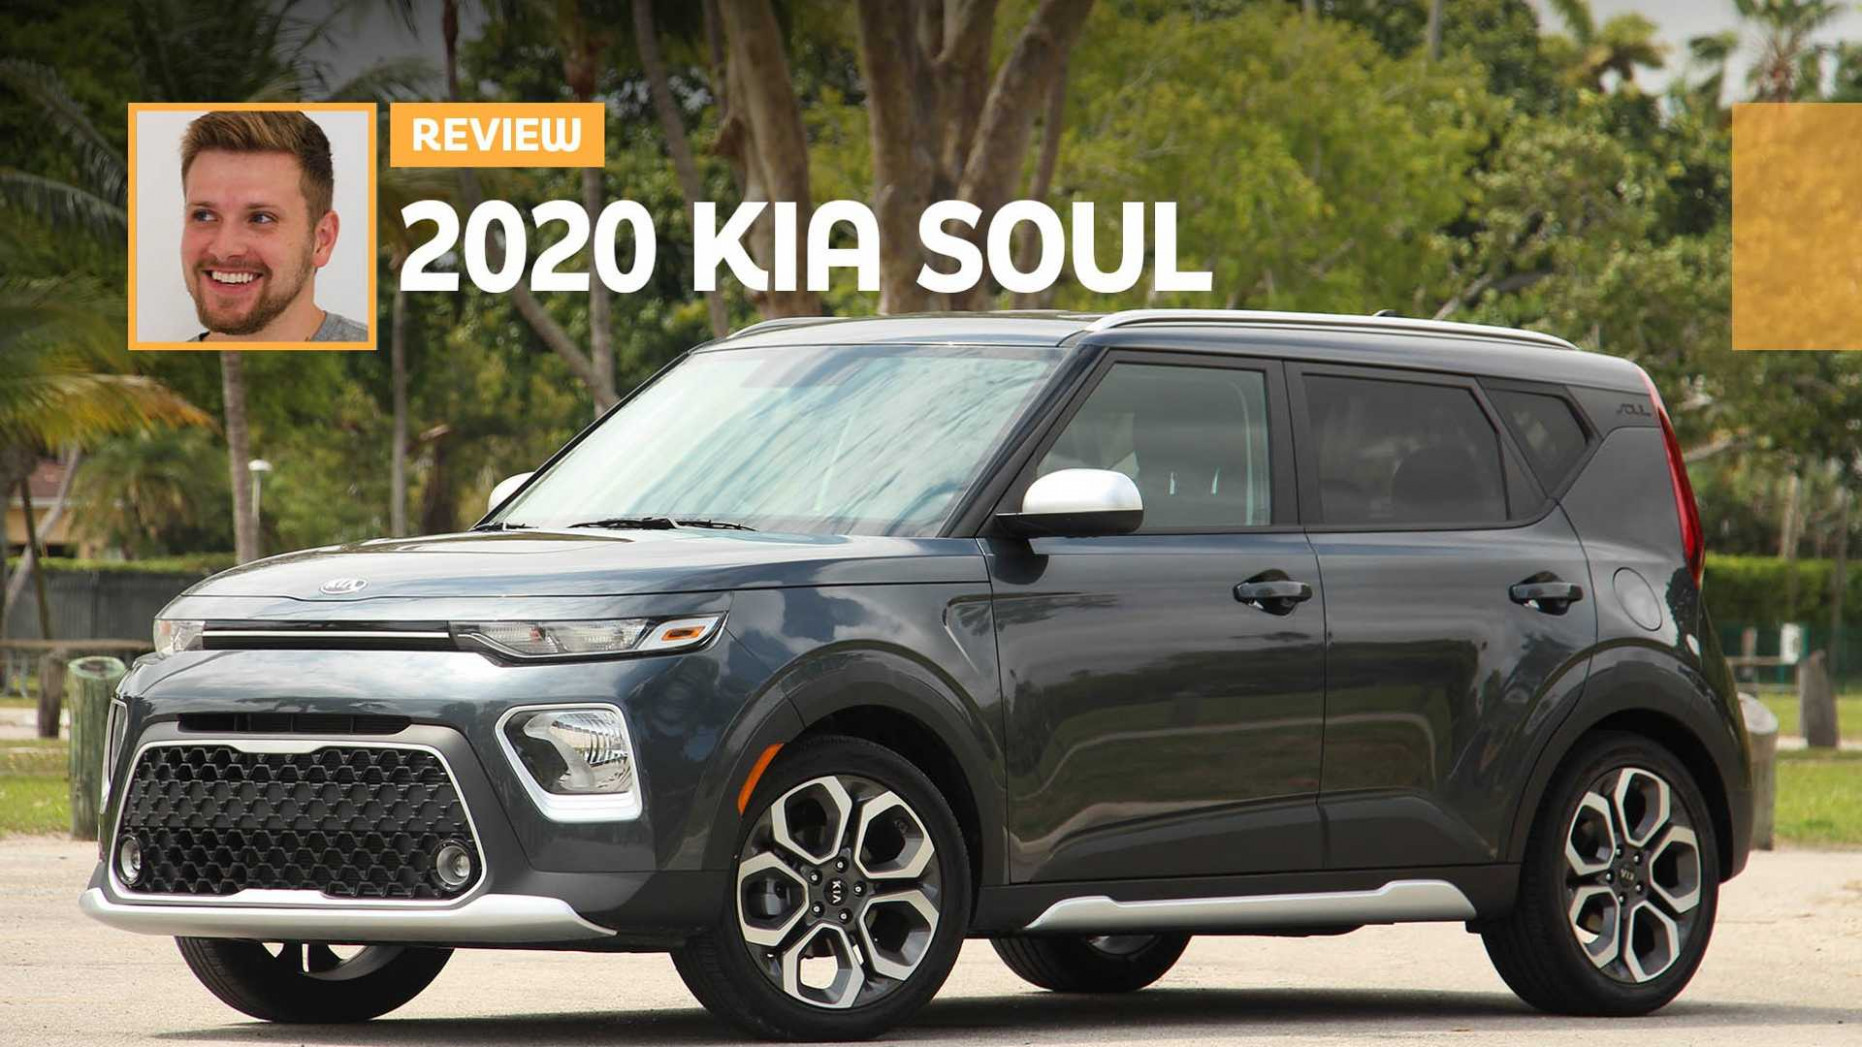 8 Kia Soul X-Line Review: Thinking Outside The Box - kia x line 2020